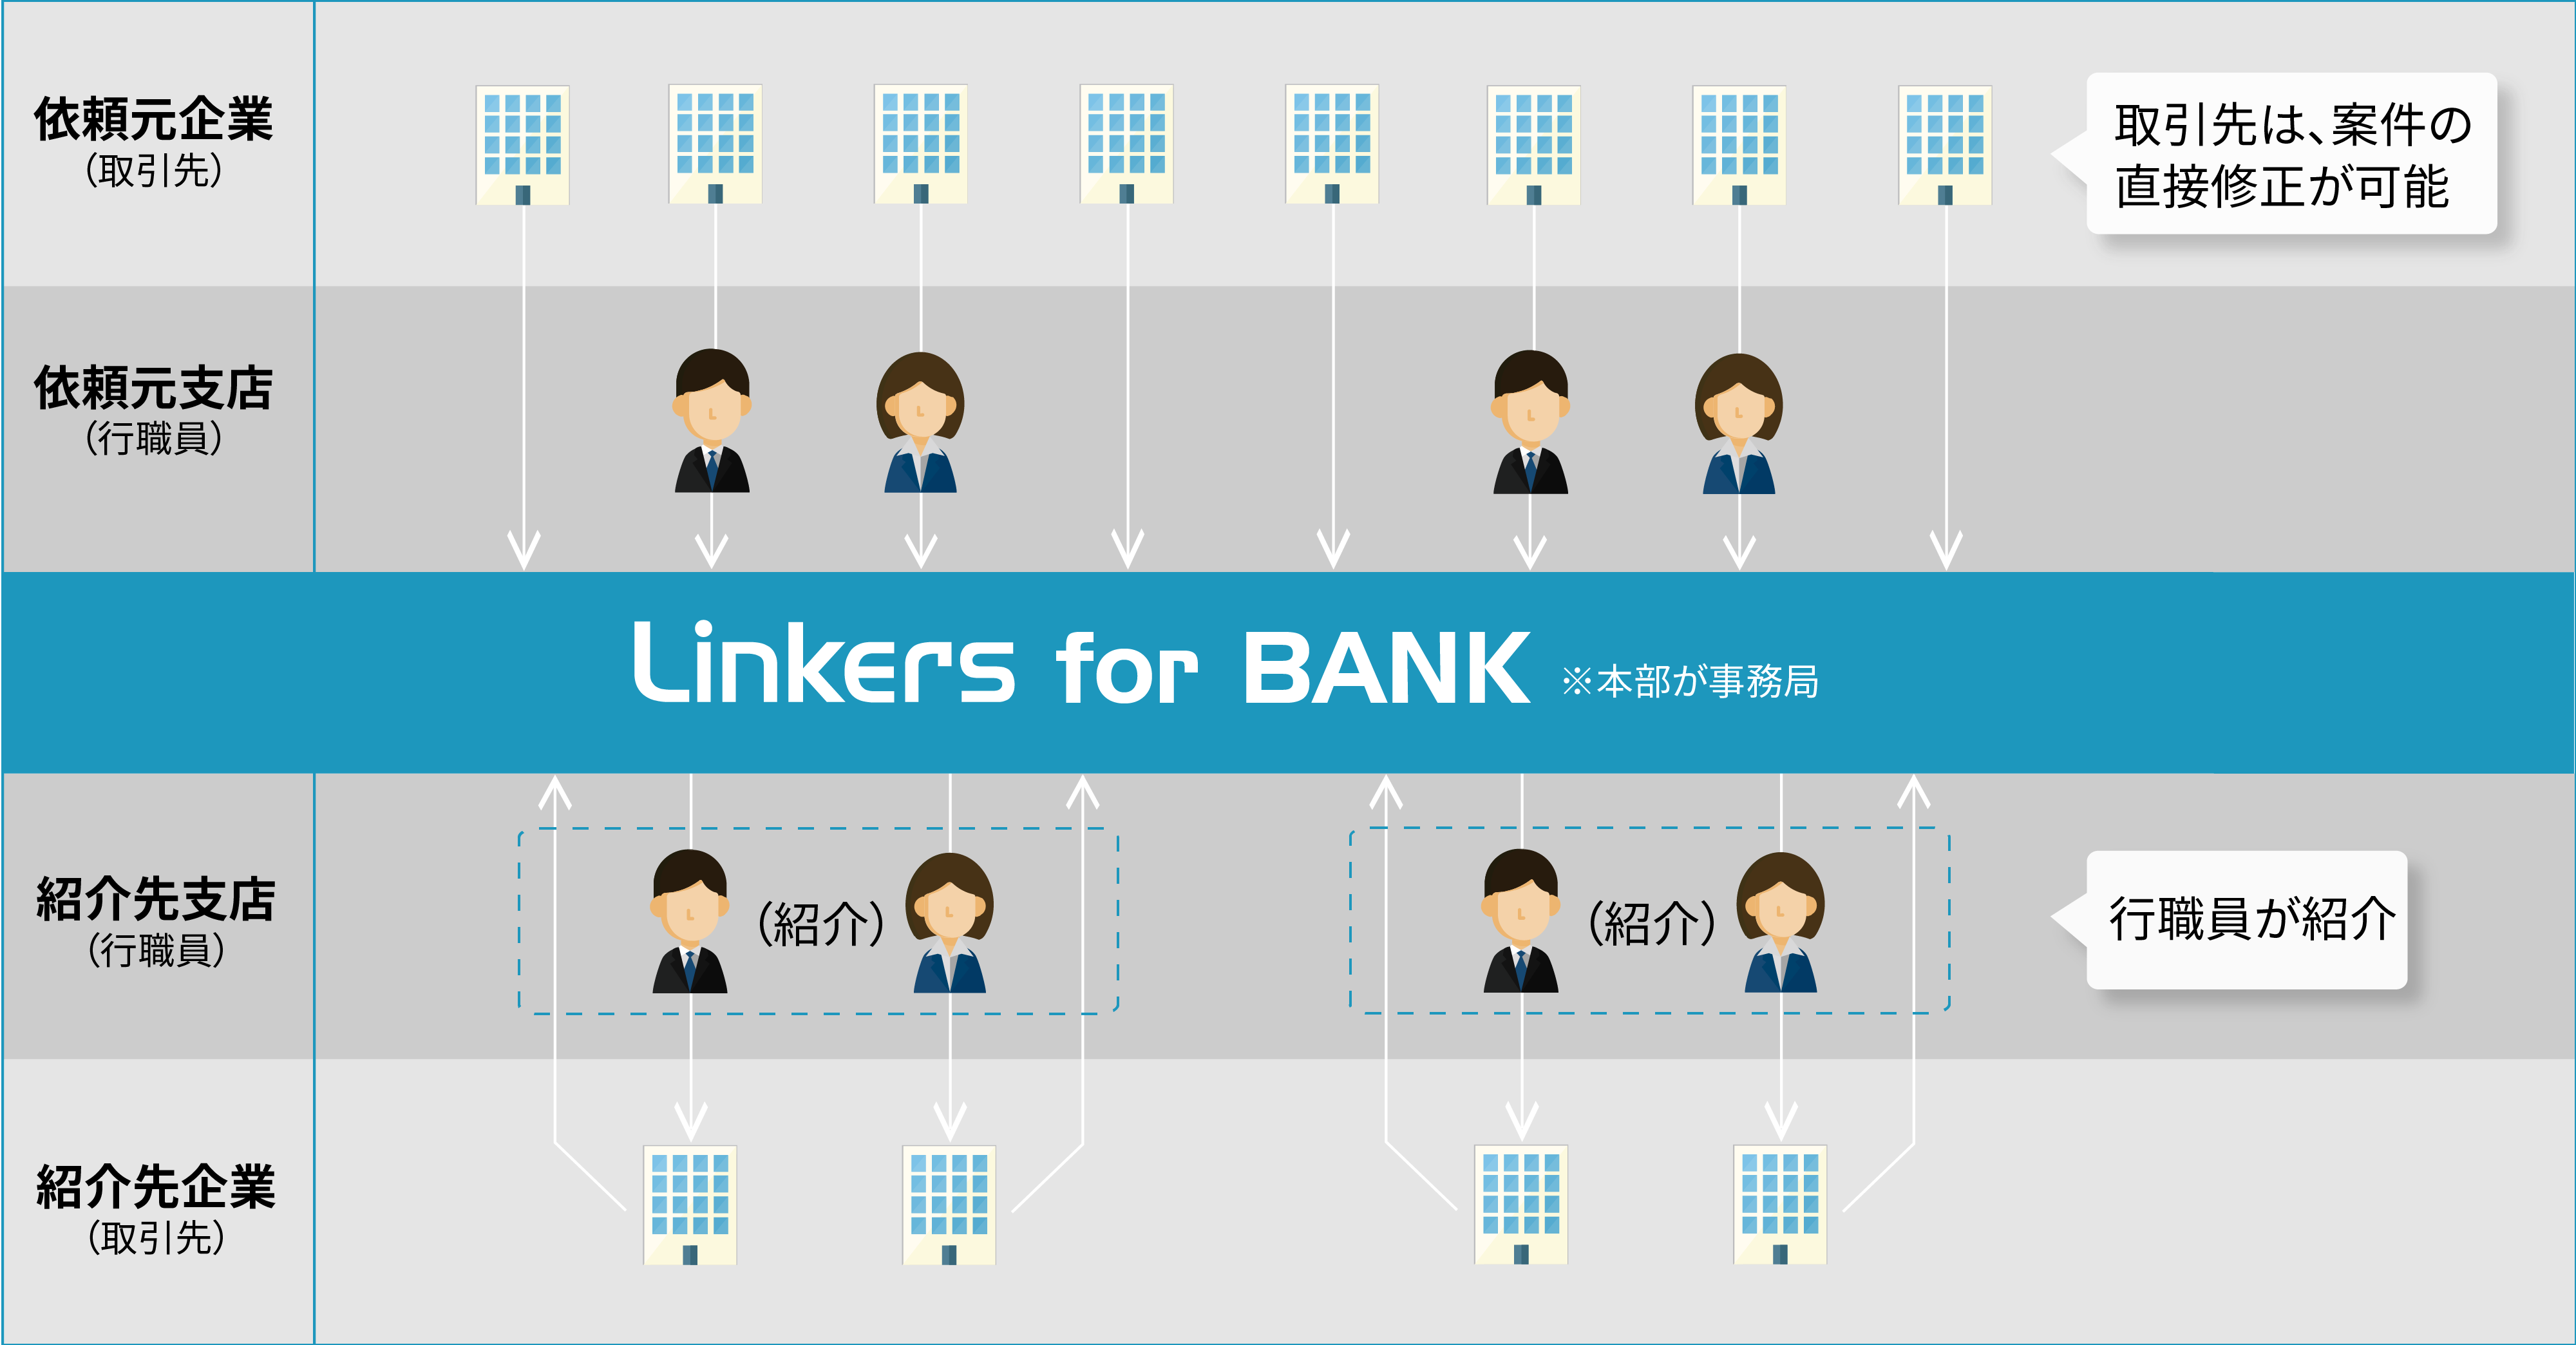 Linkers for BANK